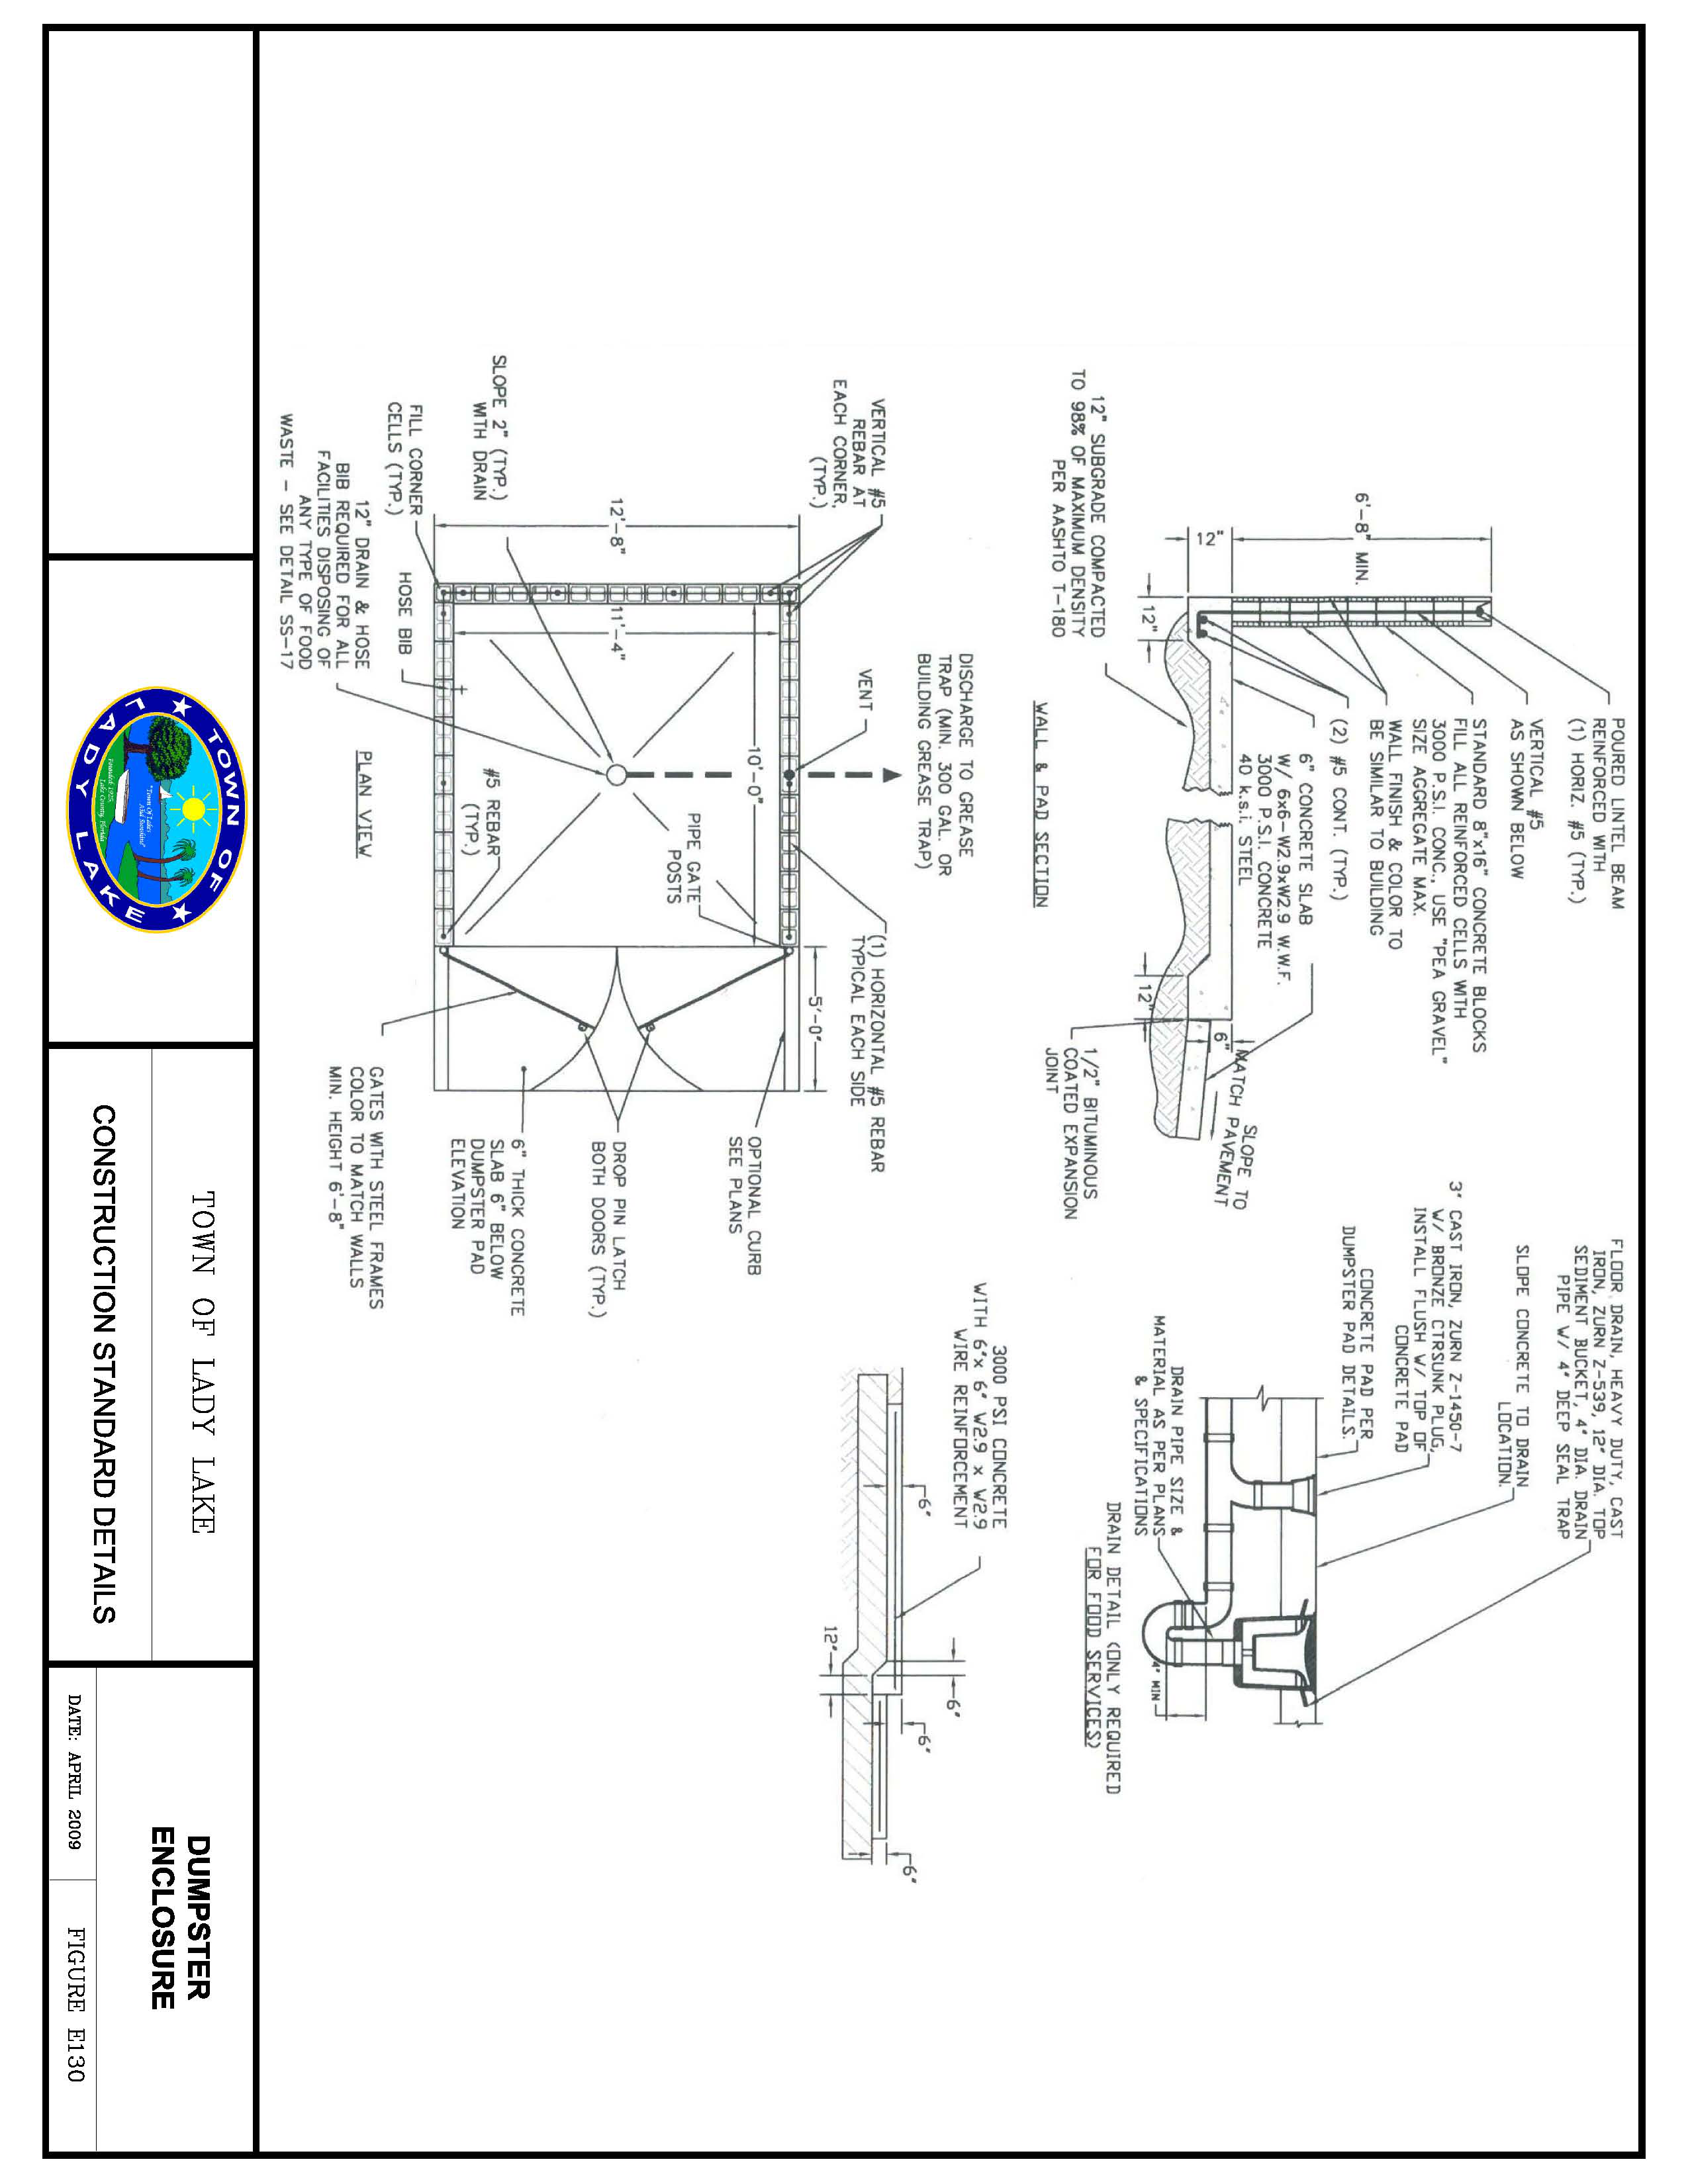 iron eagle trailers trailer plug wiring diagram 7 chapter 14 water  reuse water and sewer standard specifications  water  reuse water and sewer standard